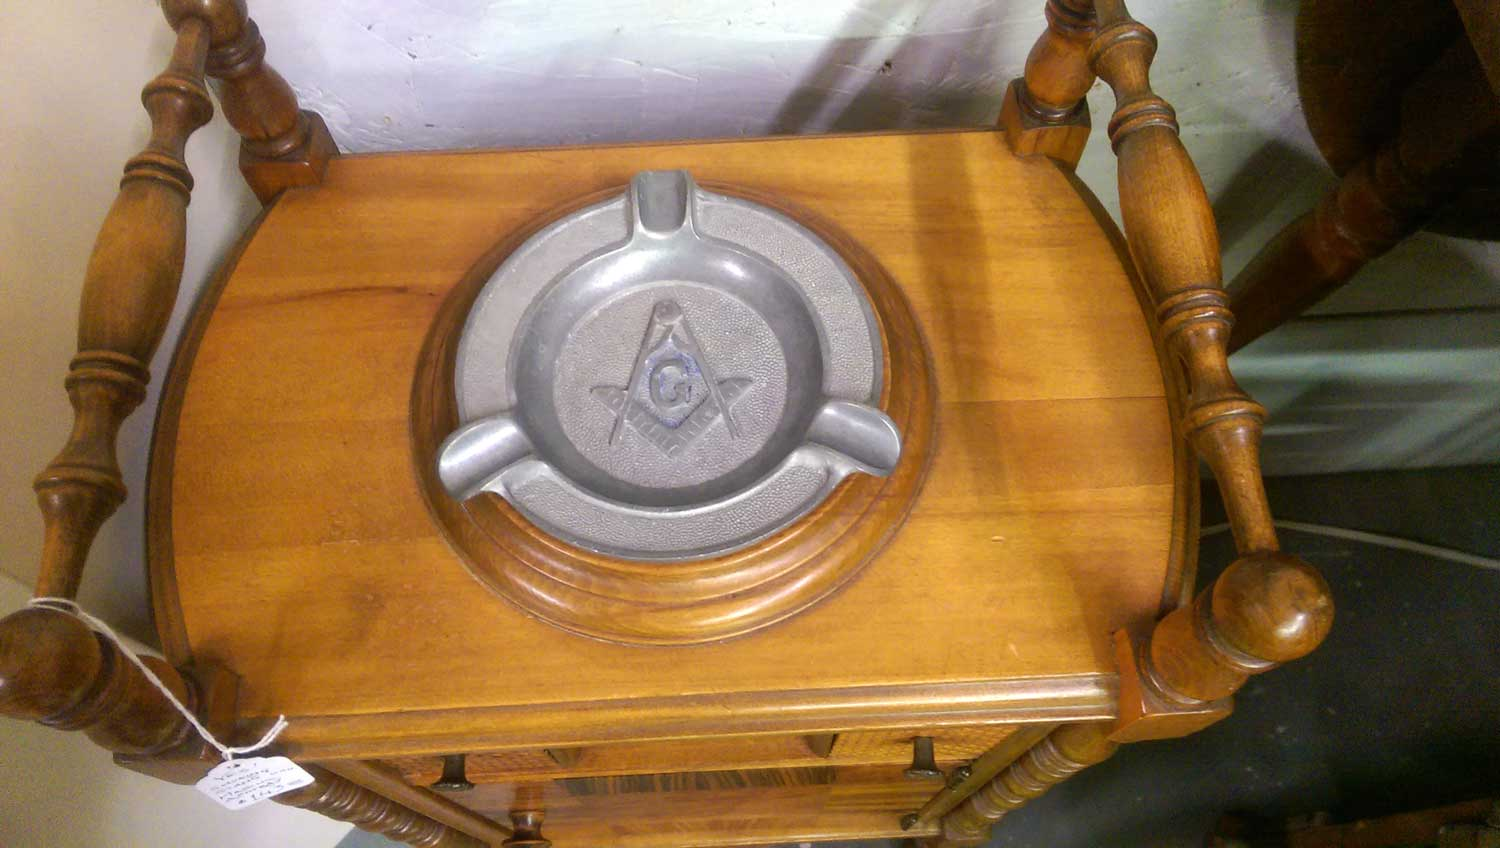 Handsome Vintage Wooden Smoking Stand Humidor with Freemasons Ashtray